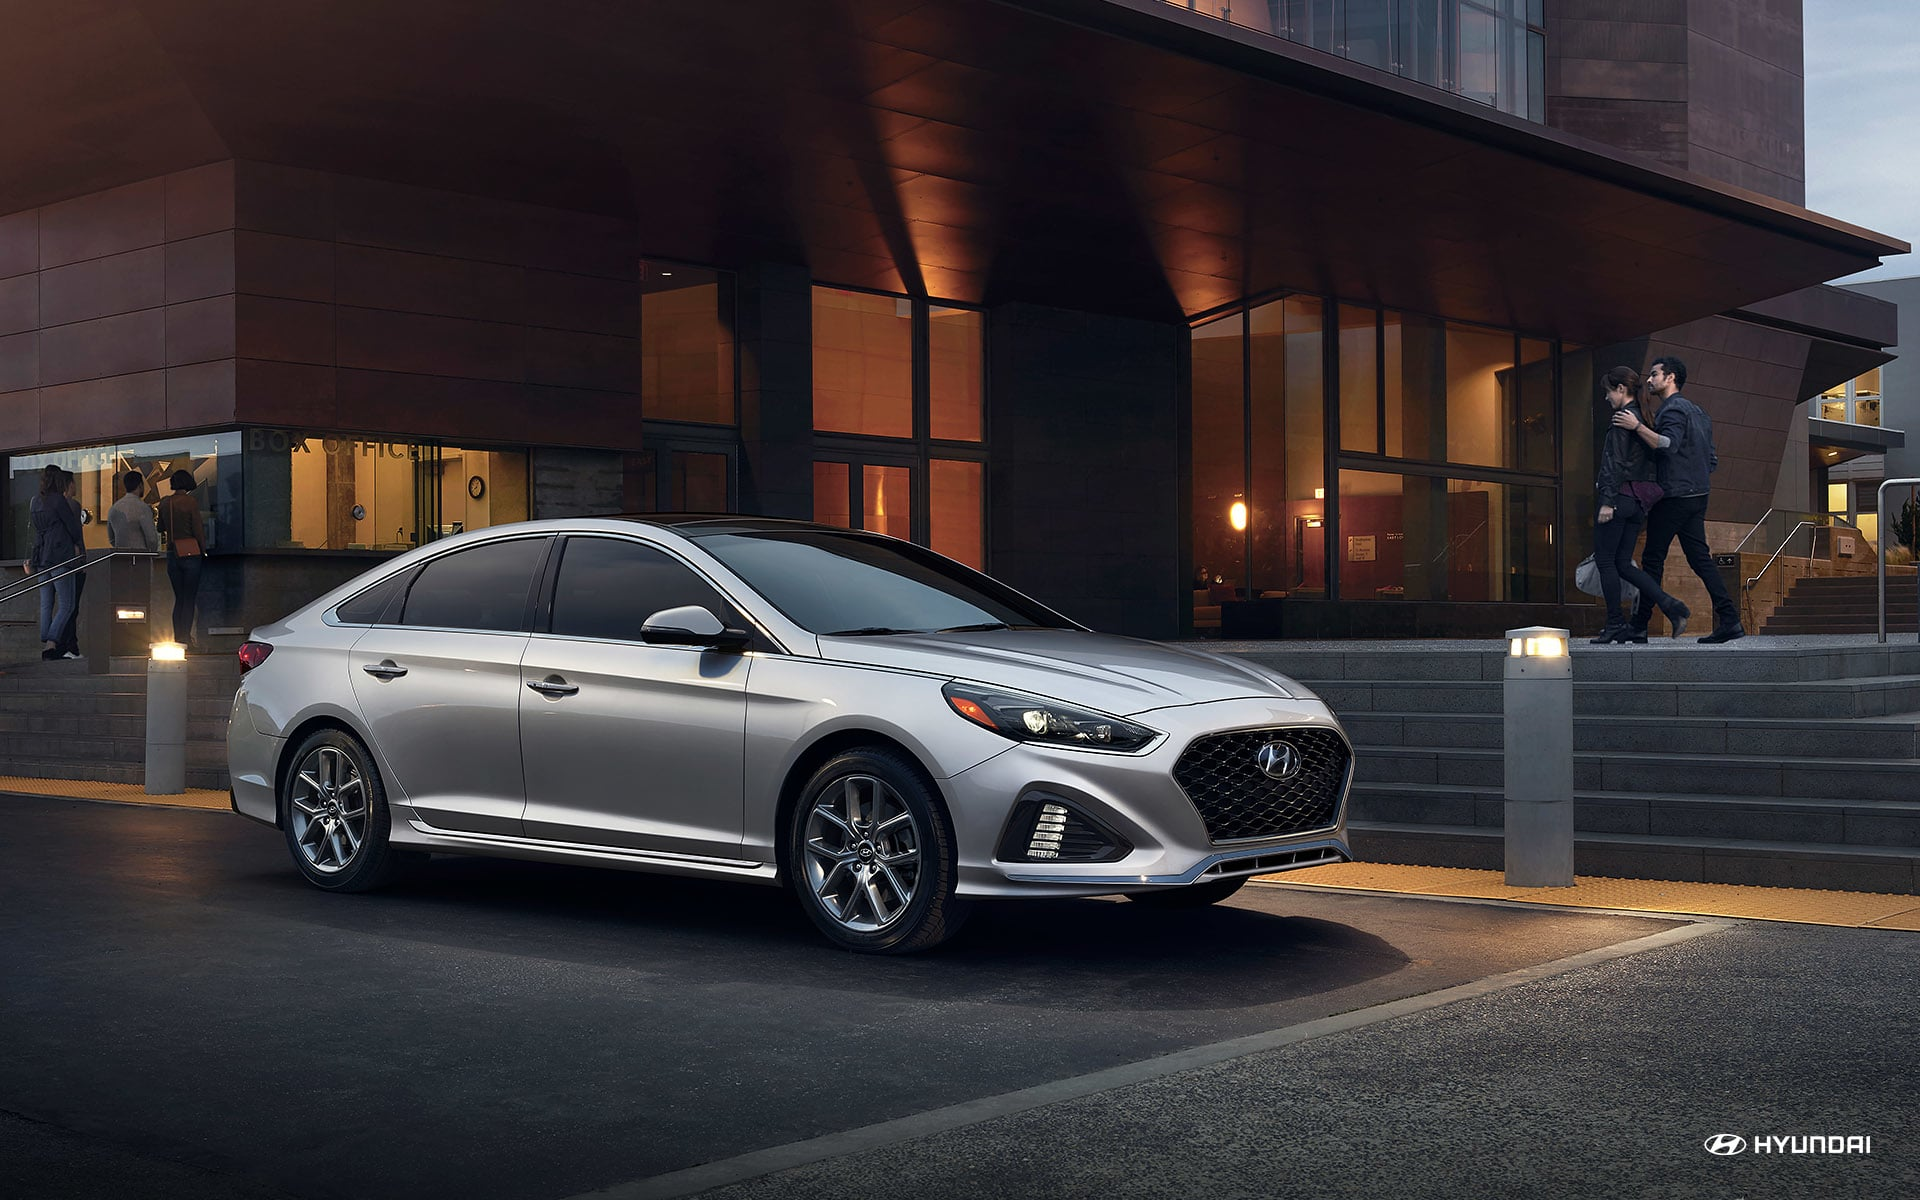 Used Hyundai Sonata for Sale in Capitol Heights, MD